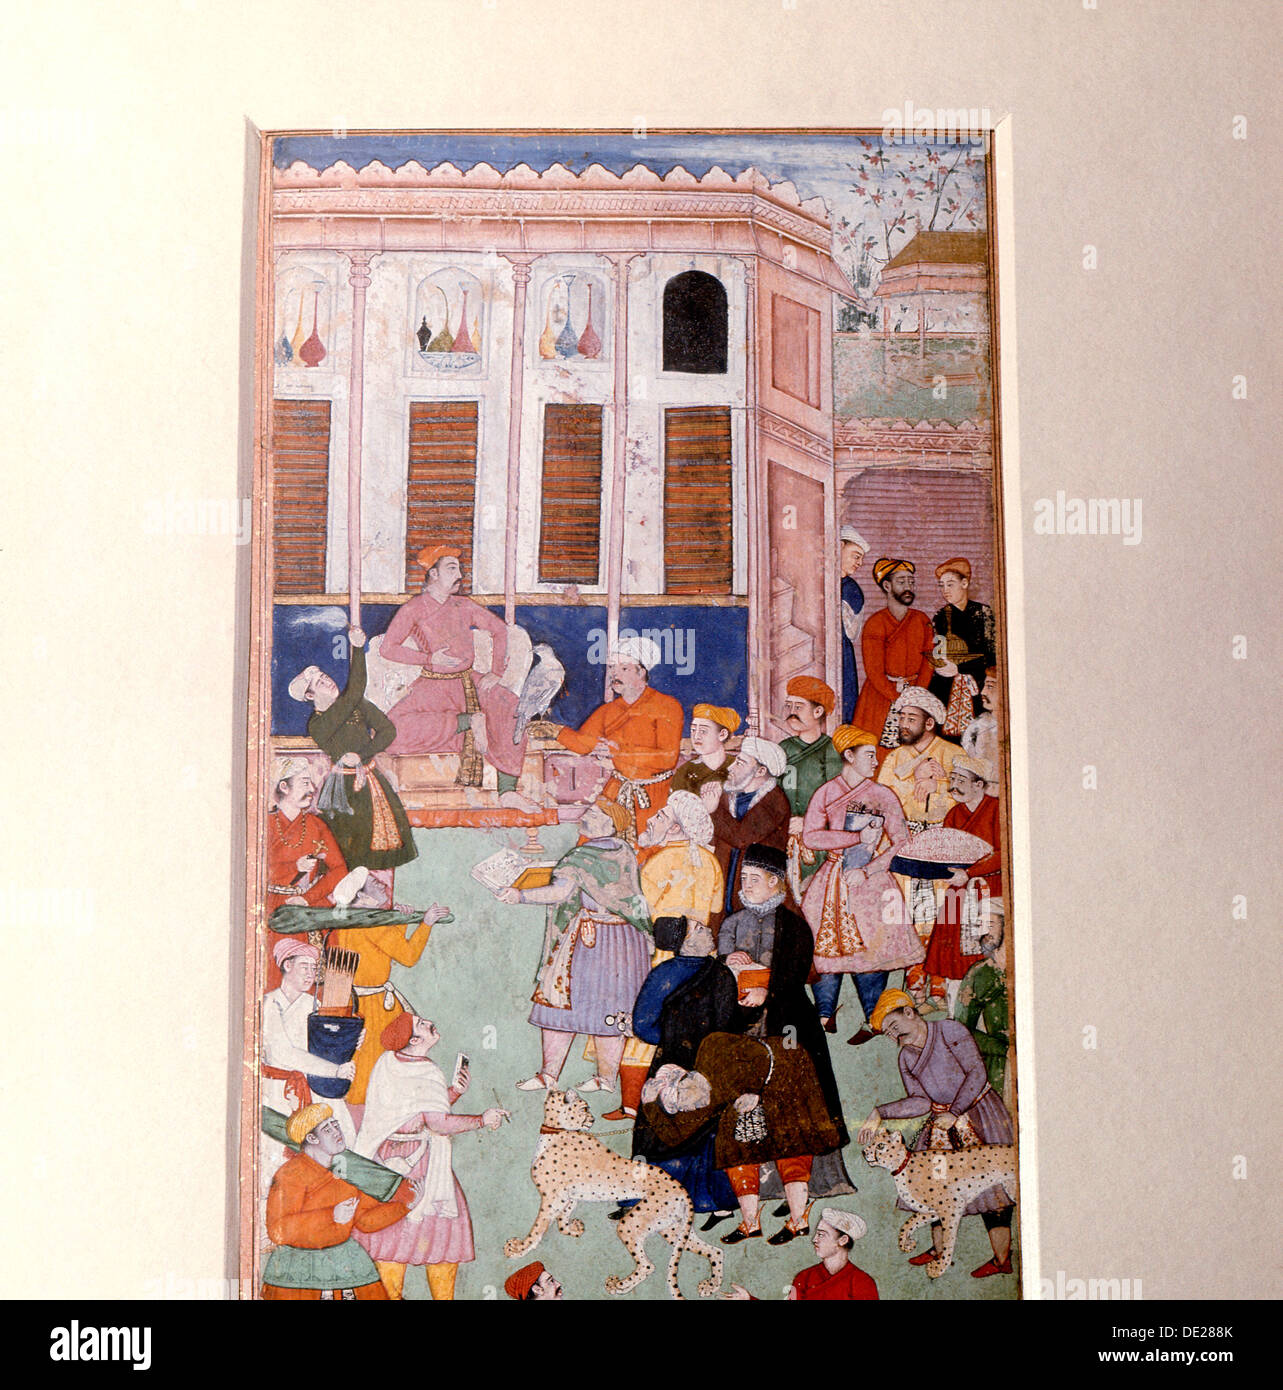 Akbar or Jahangir receiving gifts from guests. - Stock Image